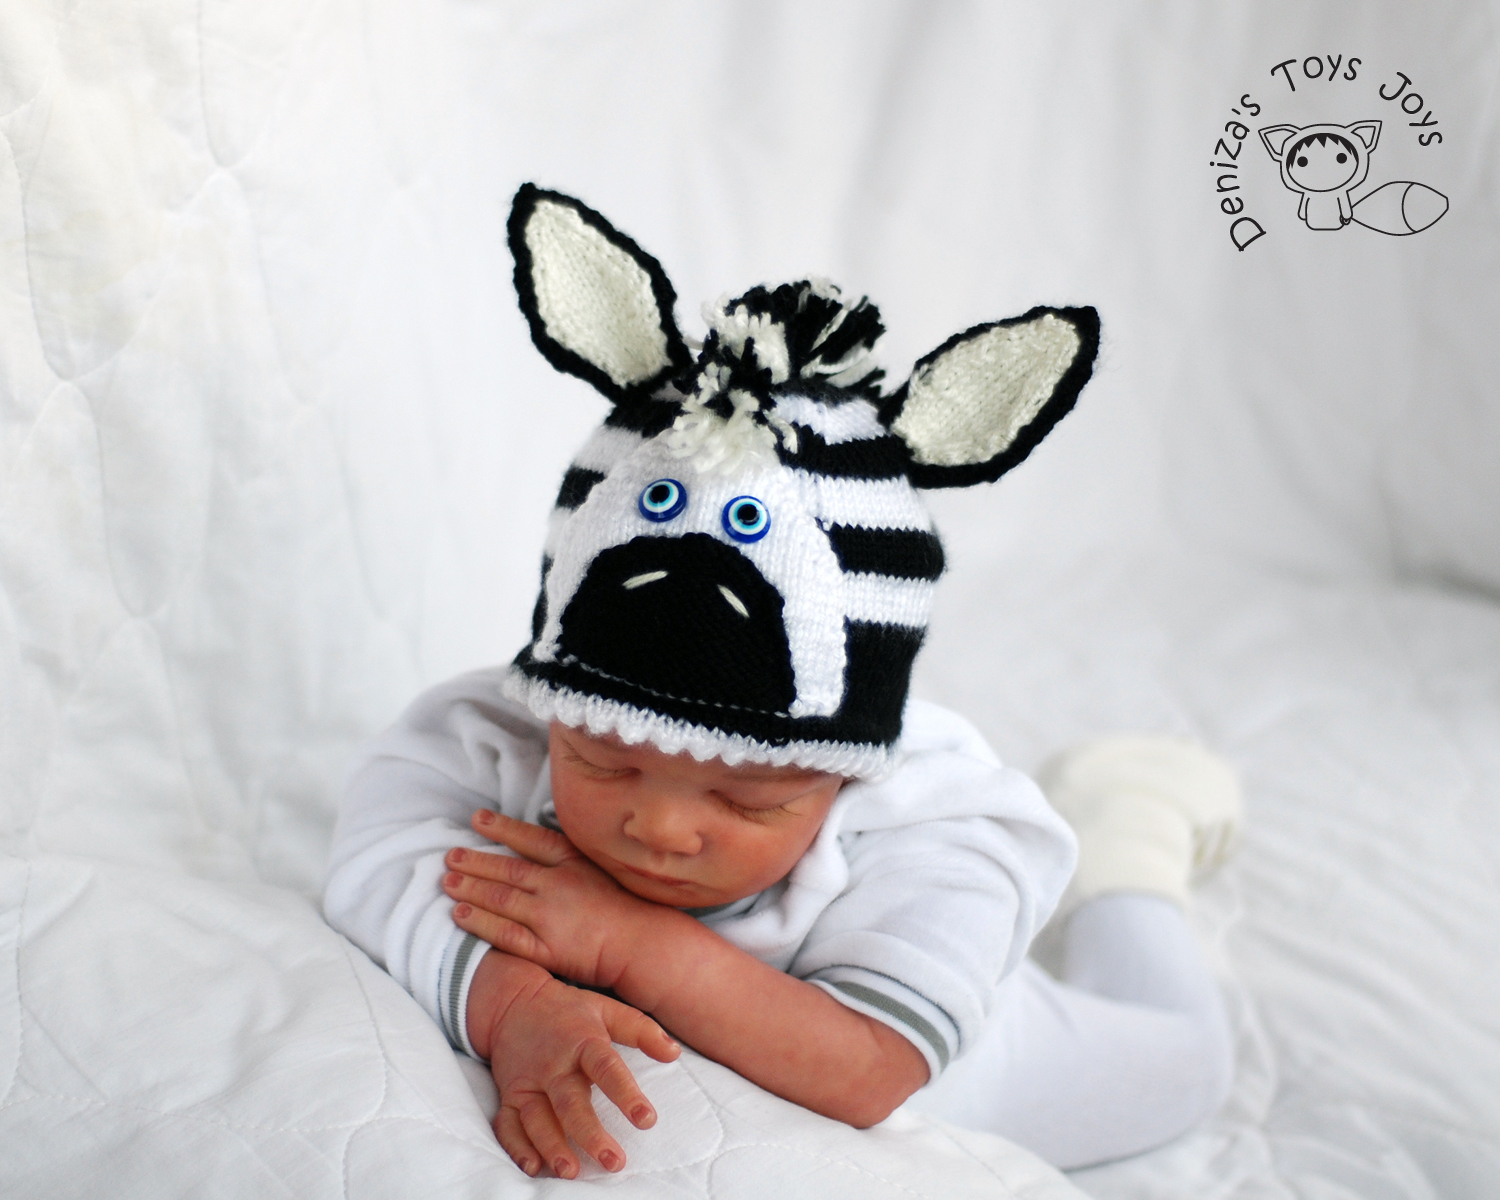 Knitting Pattern For Zebra Hat : New Born Baby Zebra Hat Knitting Pattern. on Luulla